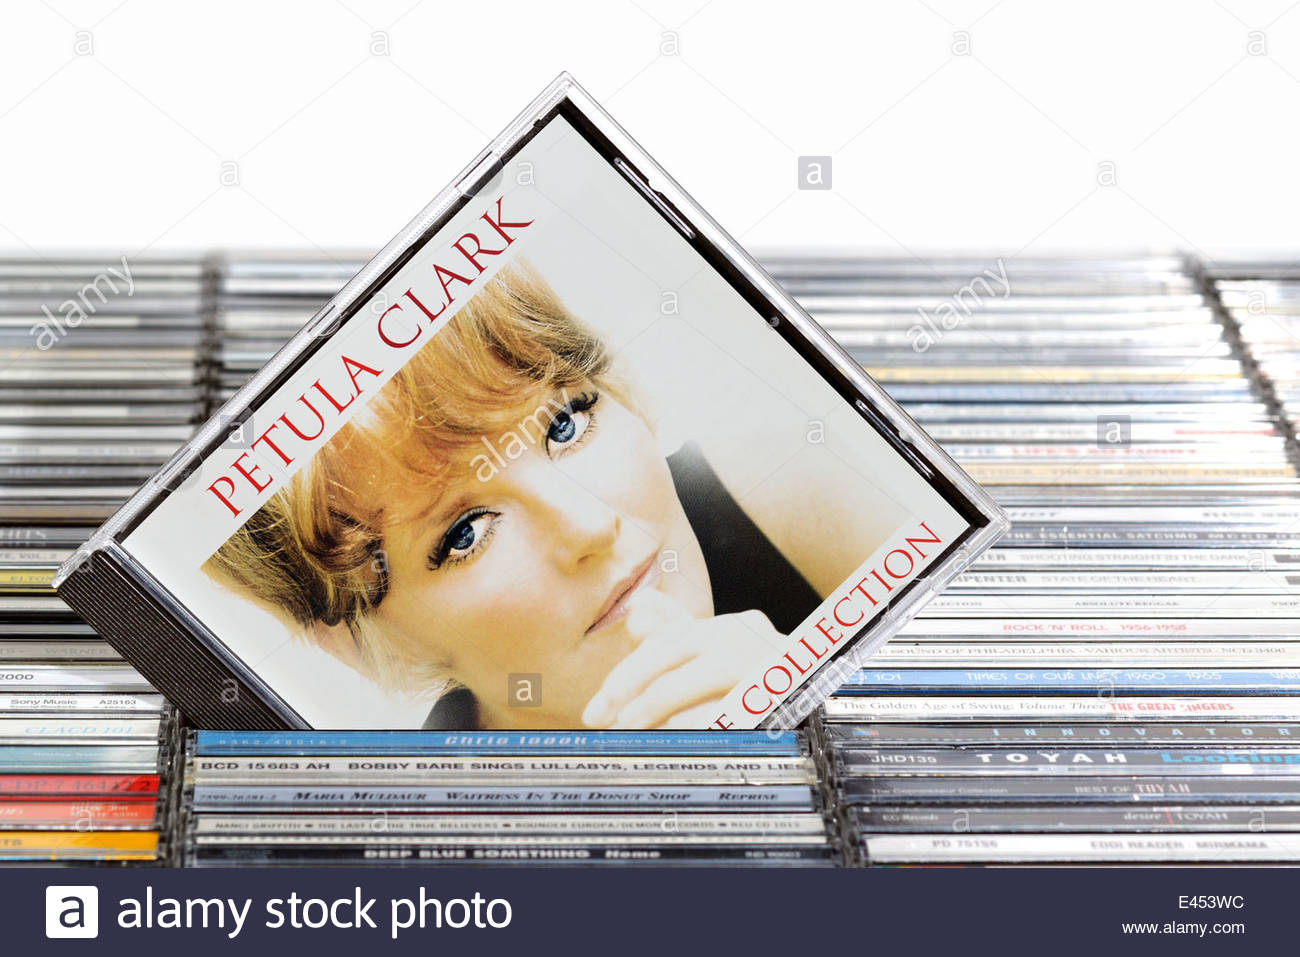 Petula Clark Ultimate Collection album, piled music CD cases, England - Stock Image